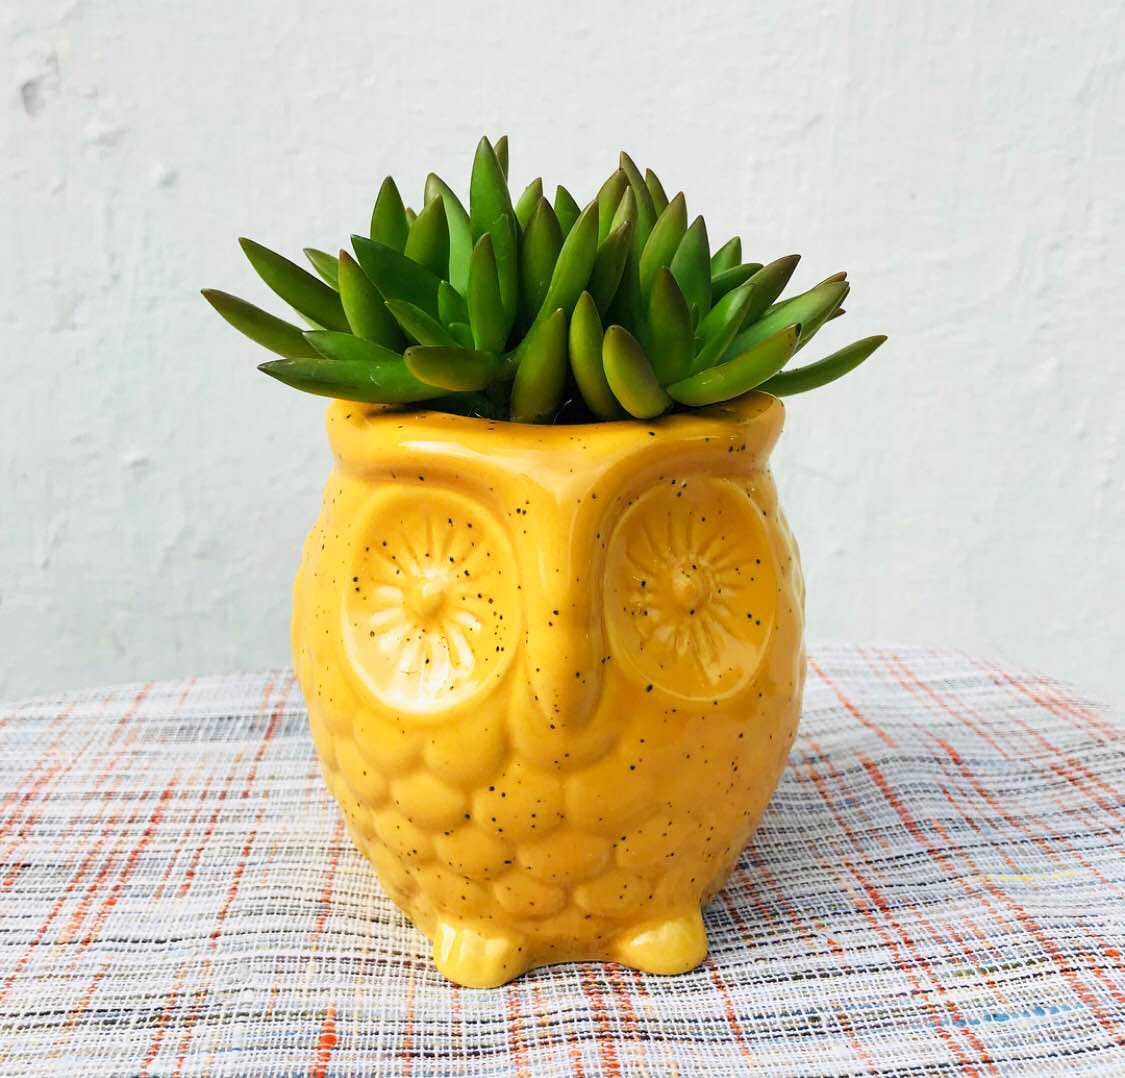 Pineapple,Ananas,Yellow,Fruit,Plant,Flowerpot,Food,Ceramic,Vase,Houseplant